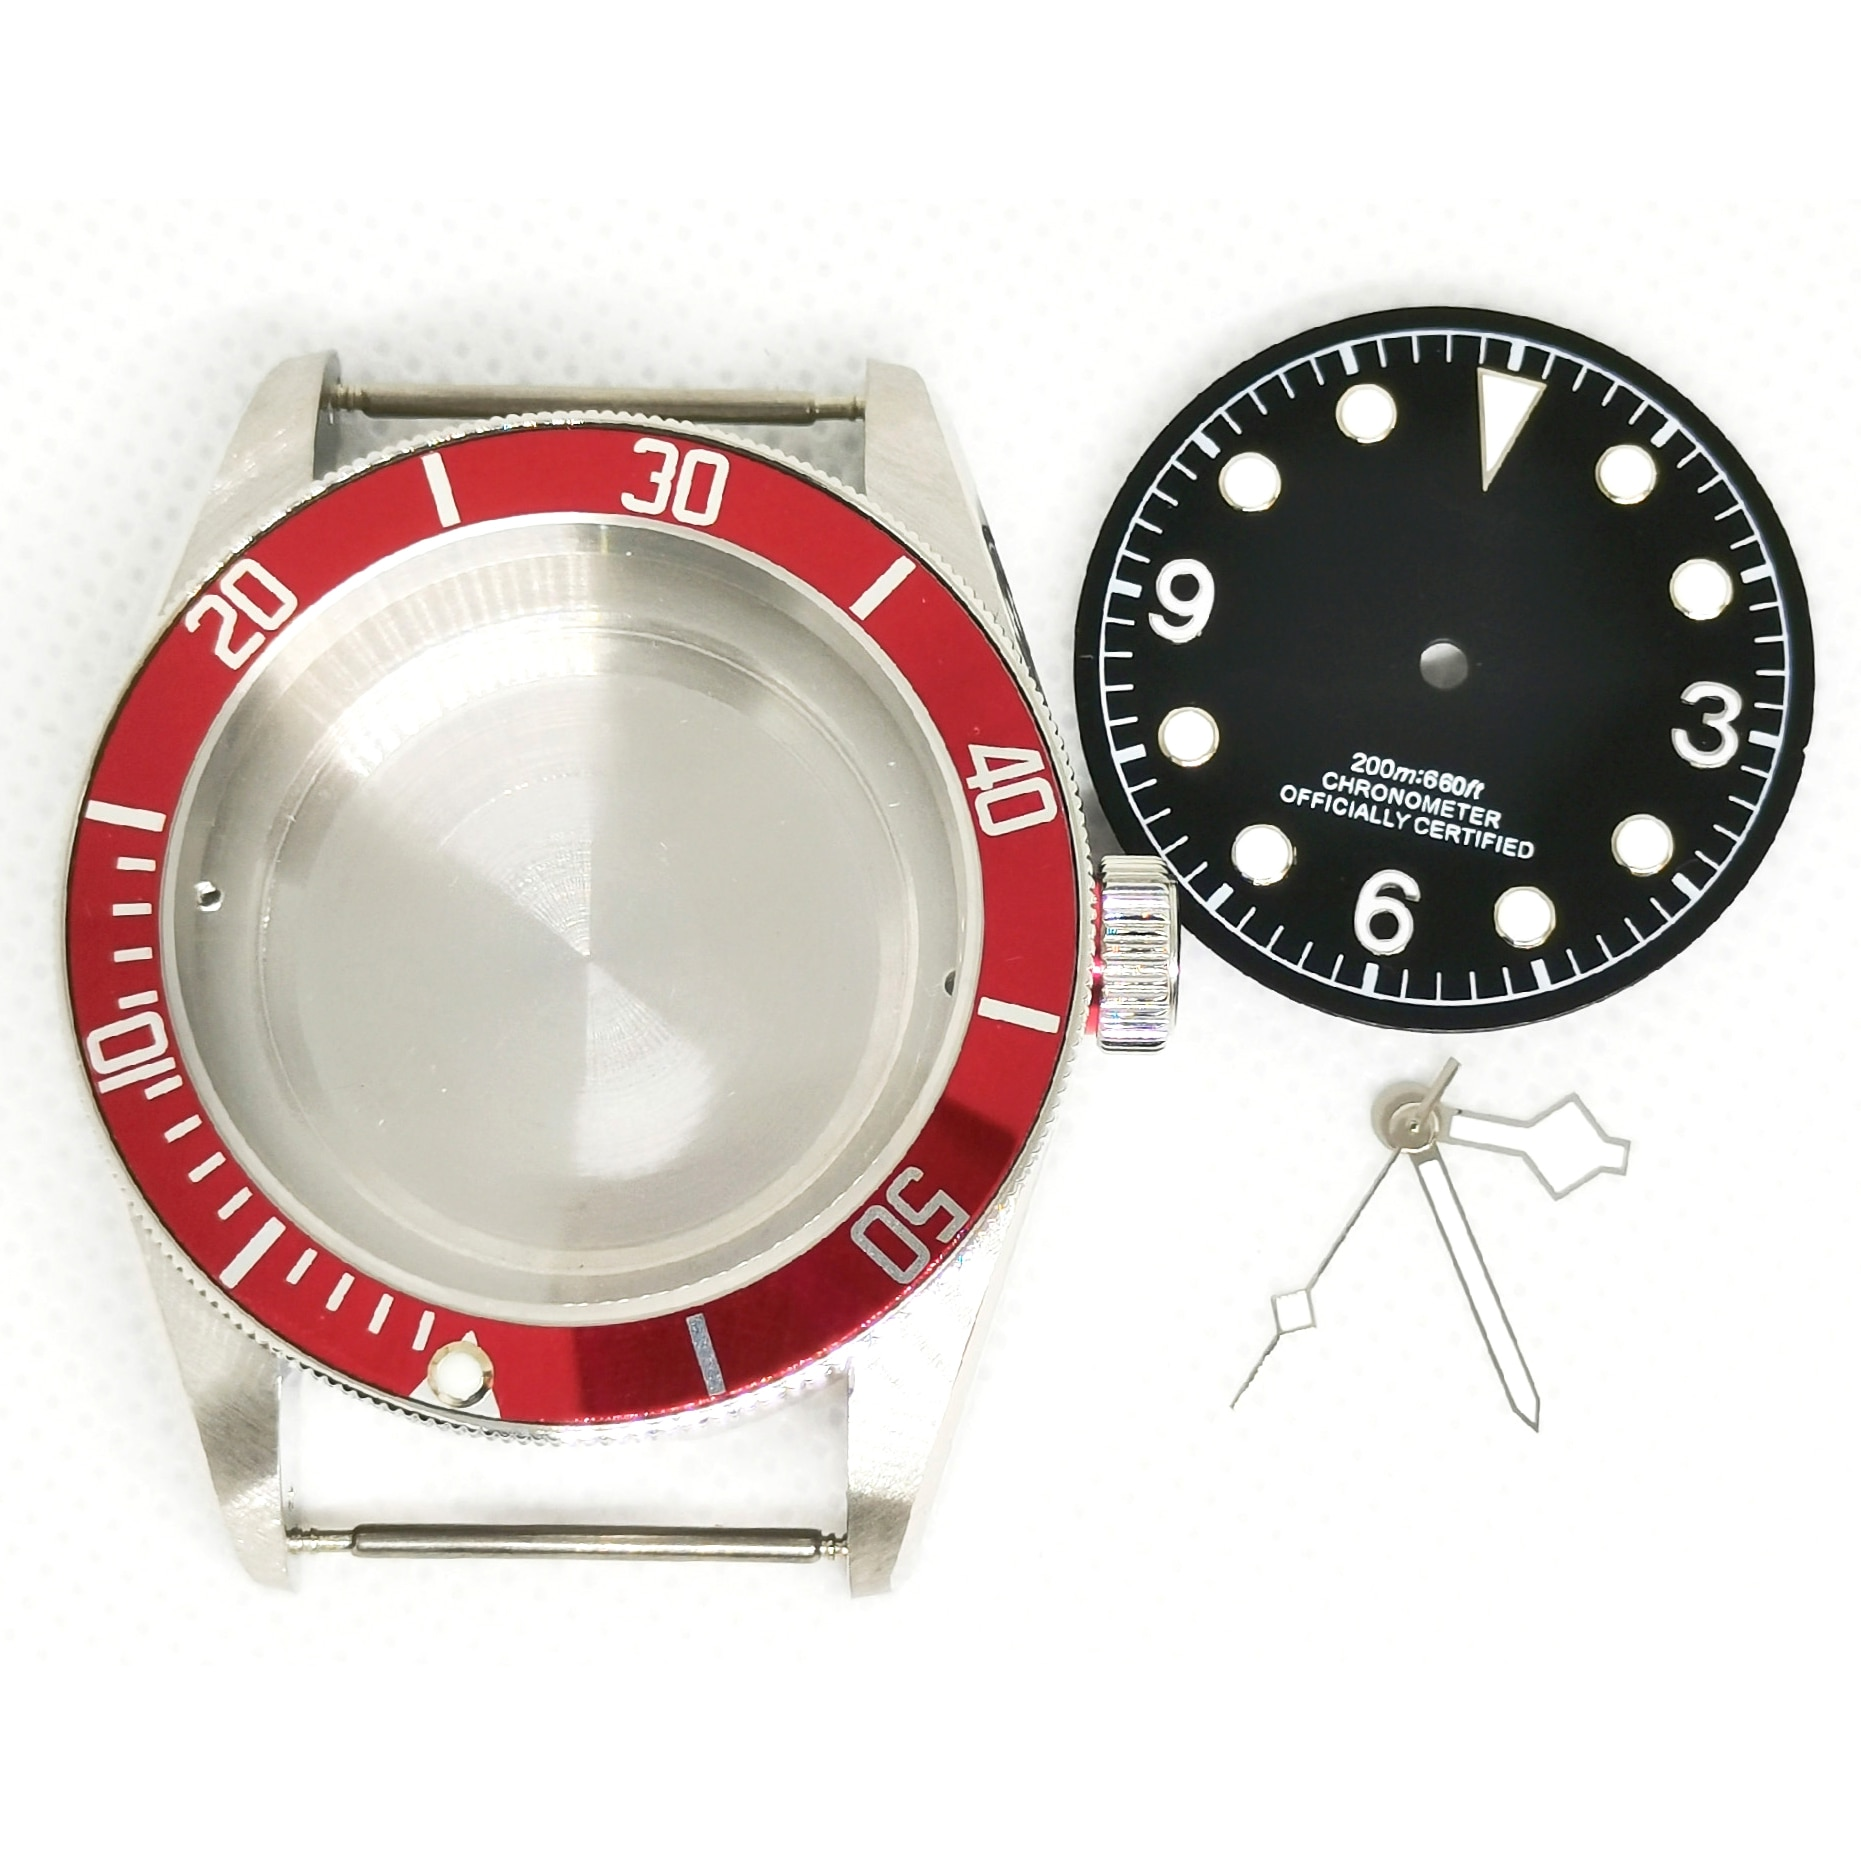 40MM 316 Stainless Steel Man's Watch  Case Dial And Hands Set For Automatic Movement ETA 2836 ST2130 miyota 8215 enlarge